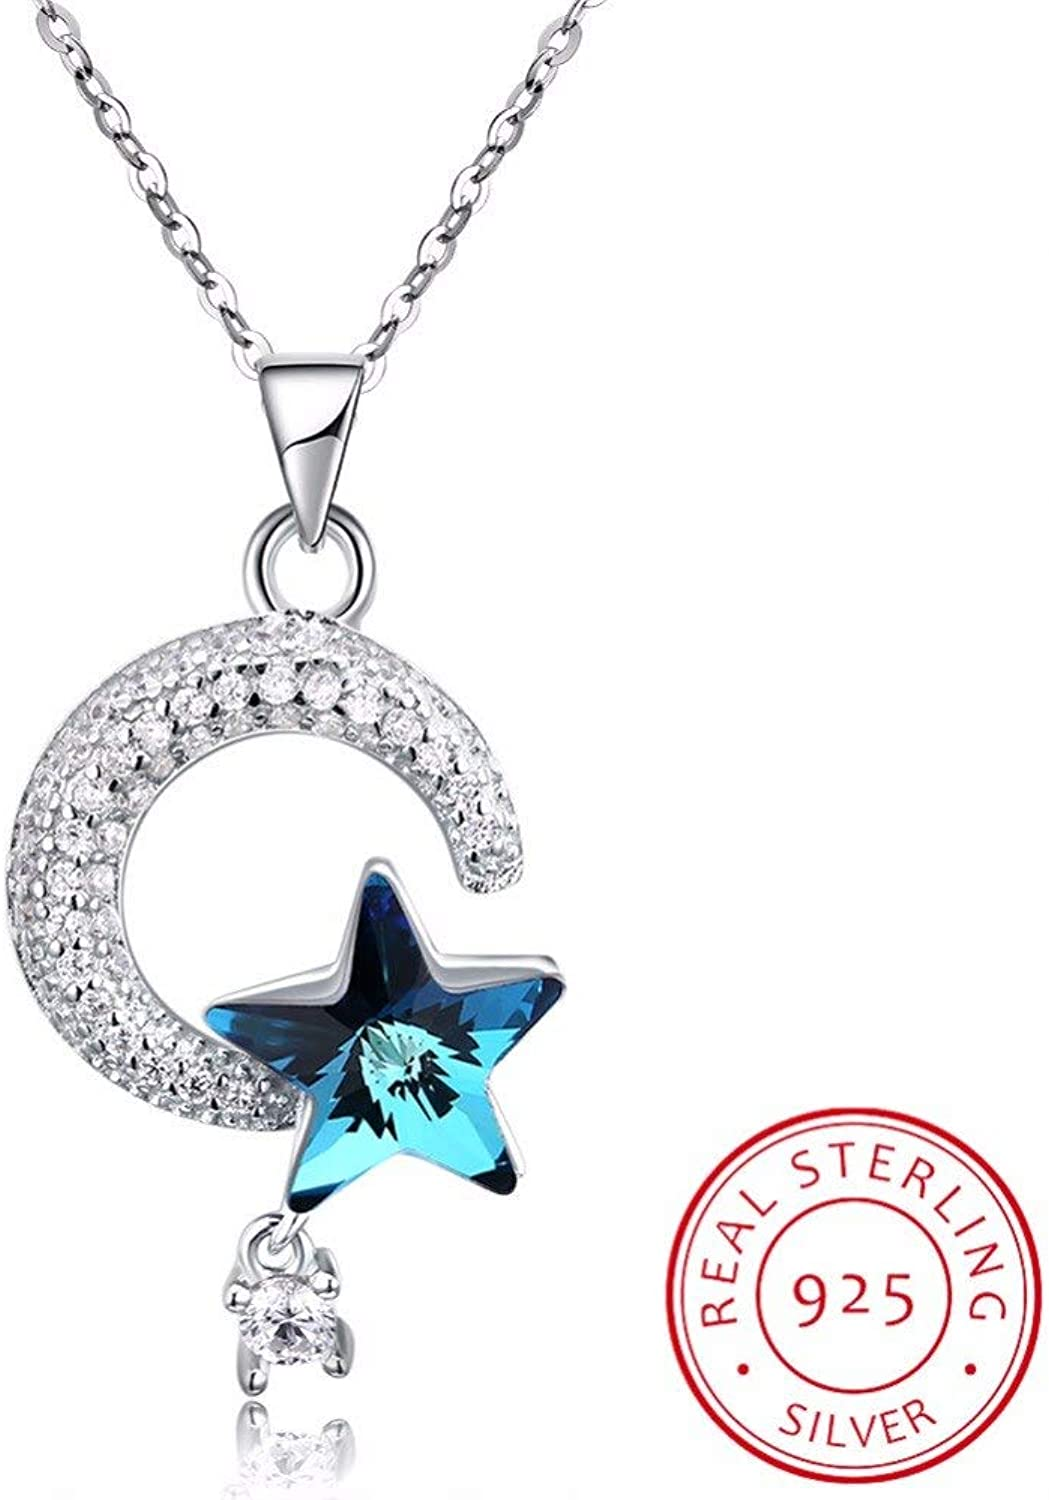 925 Sterling Silver Crescent Moon & Star Crystal Van Pendant Necklaces for Women Fine Jewelry Gifts